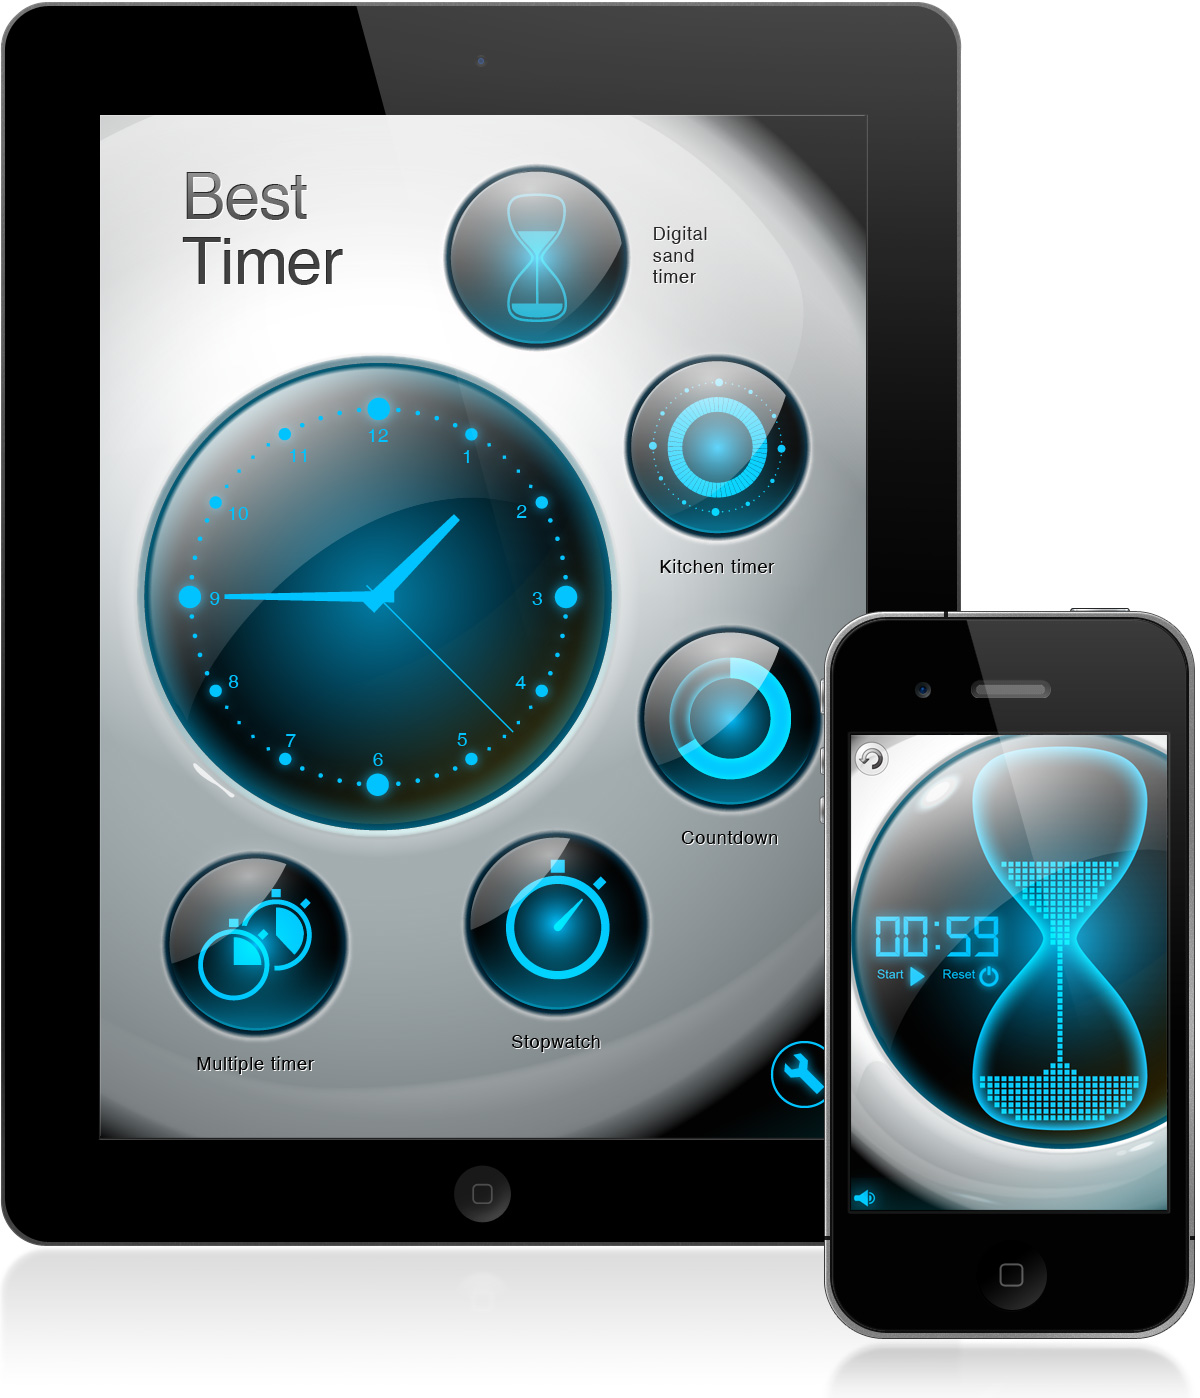 UI design for iPhone/iPad app Best Timer